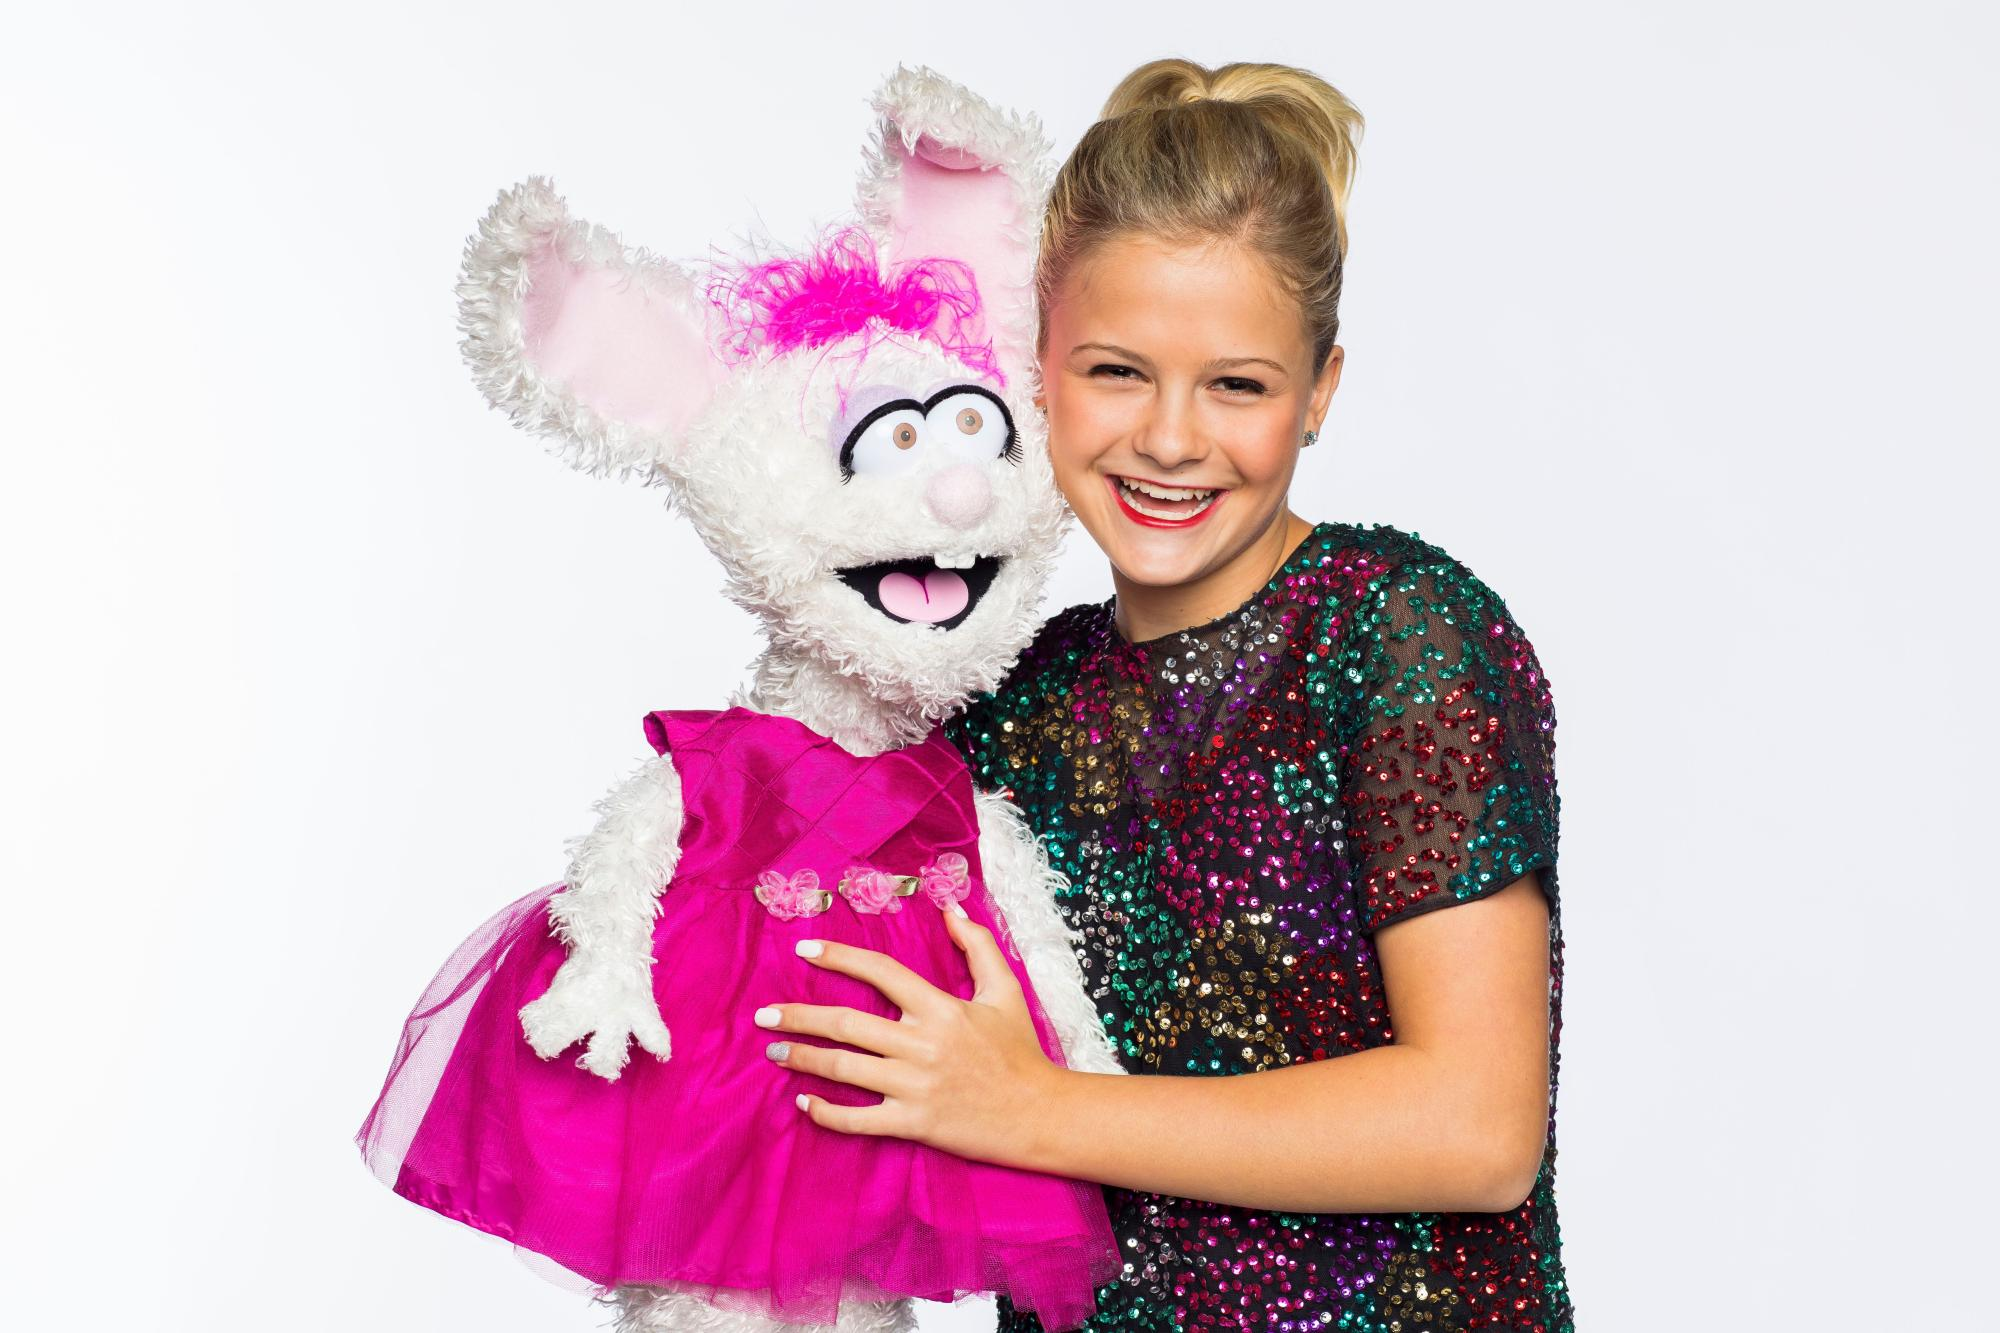 Darci_and_Petunia_March_2019.jpg